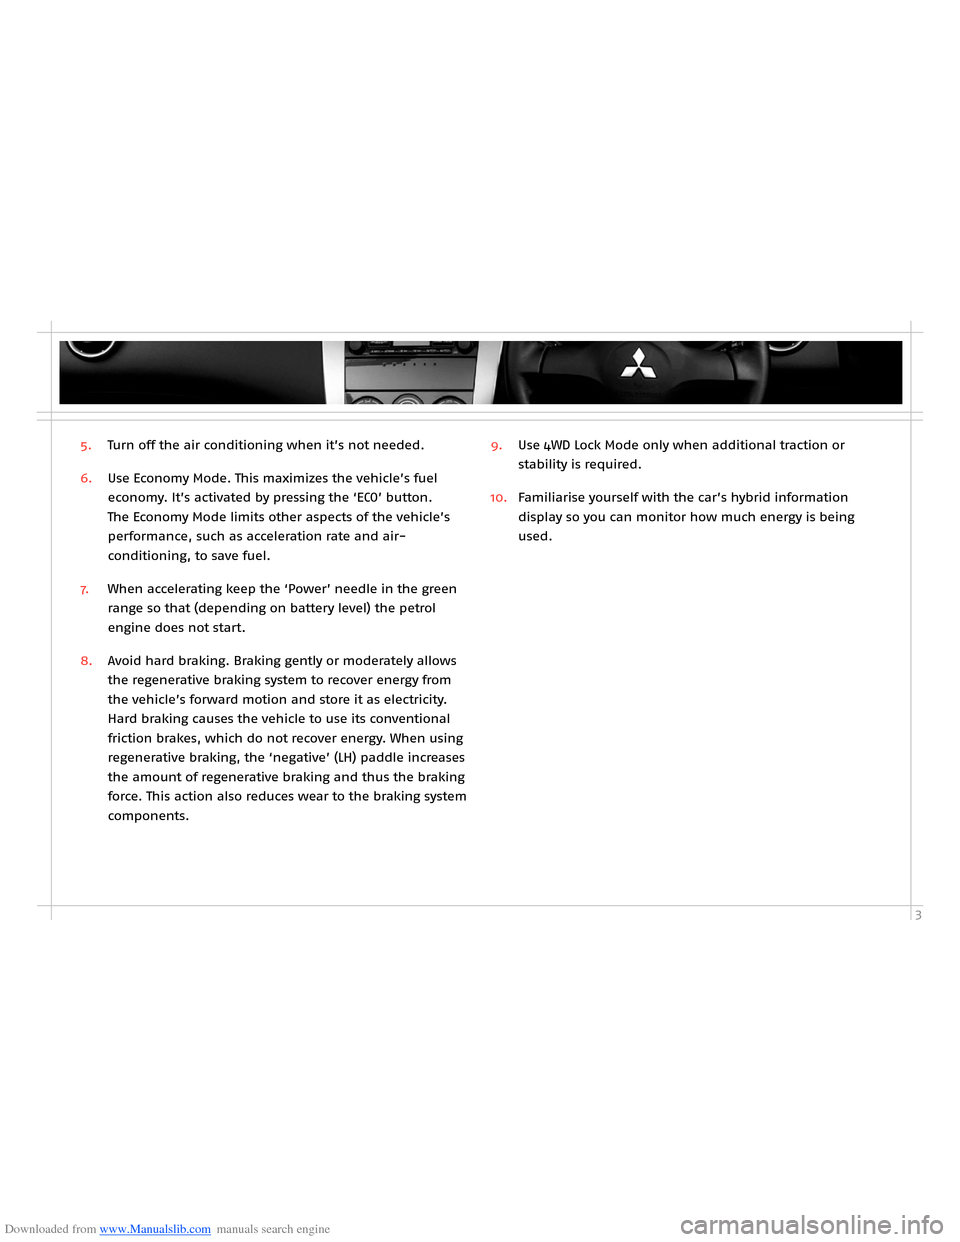 MITSUBISHI OUTLANDER HYBRID 2014 3.G Owners Handbook, Page 5